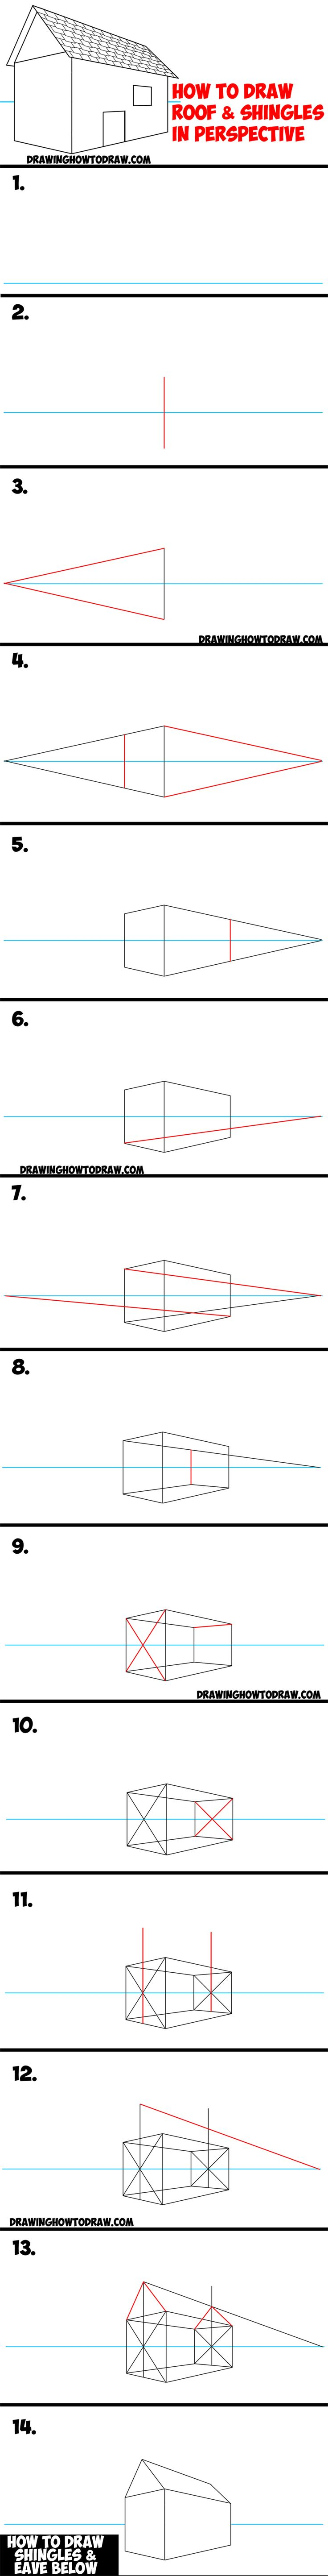 How To Draw A Roof And Shingles With Two Point Perspective  Easy Step By  Step